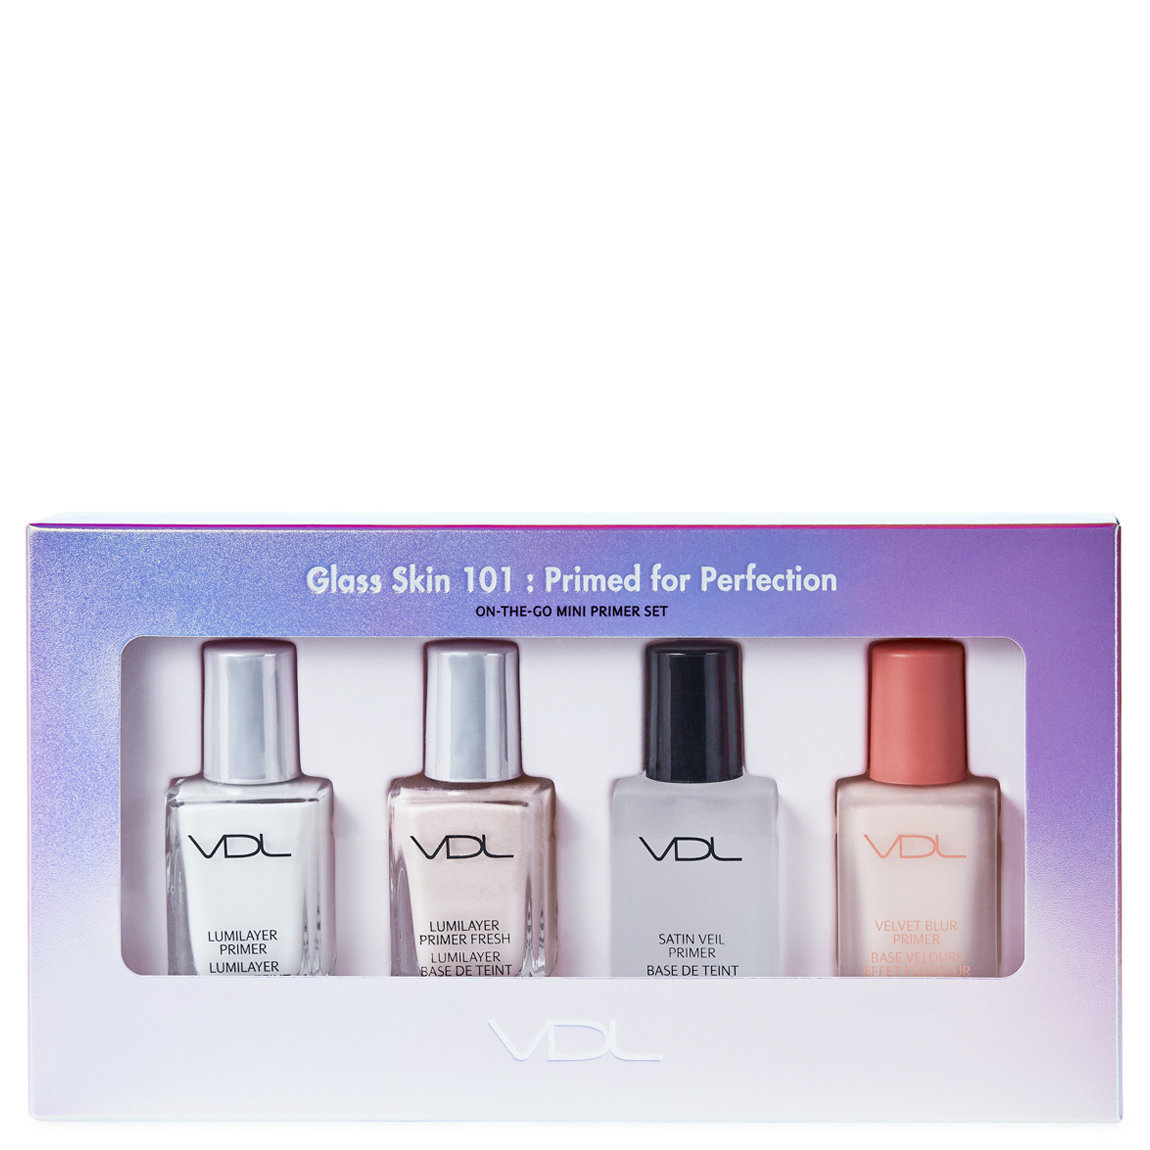 VDL Glass Skin 101: Primed for Perfection Mini Primer Set product swatch.